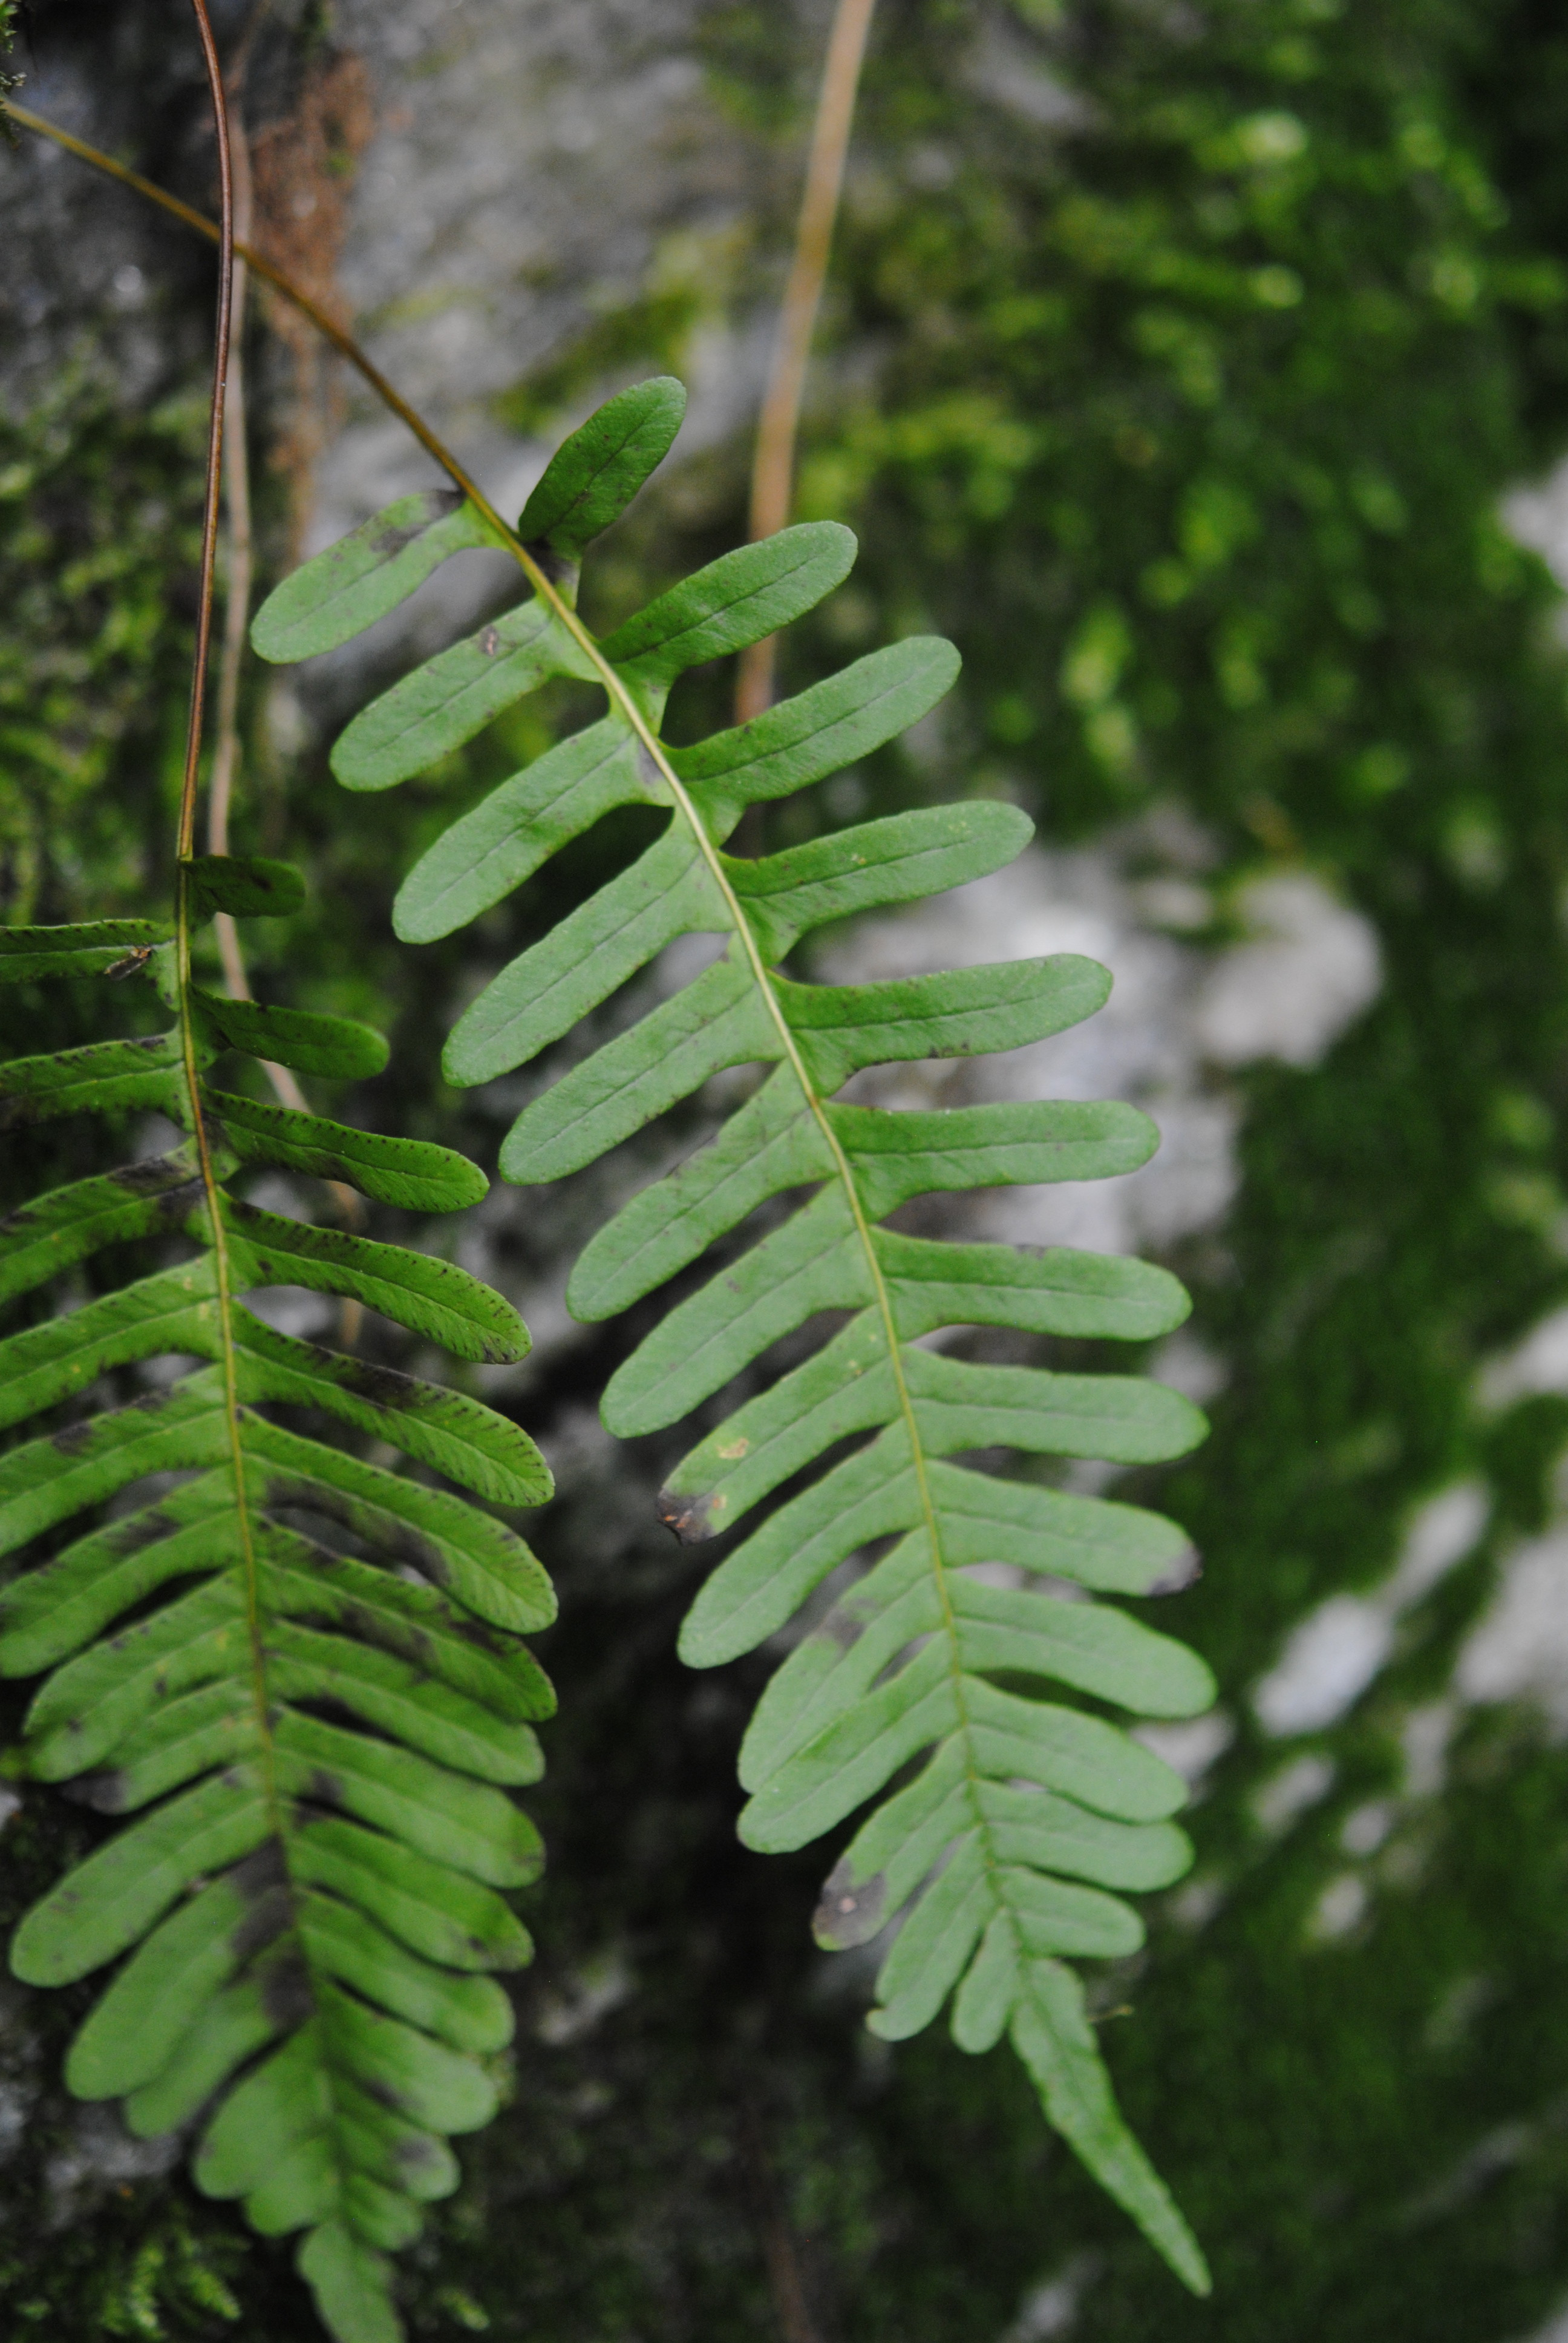 Polypodium virginianum